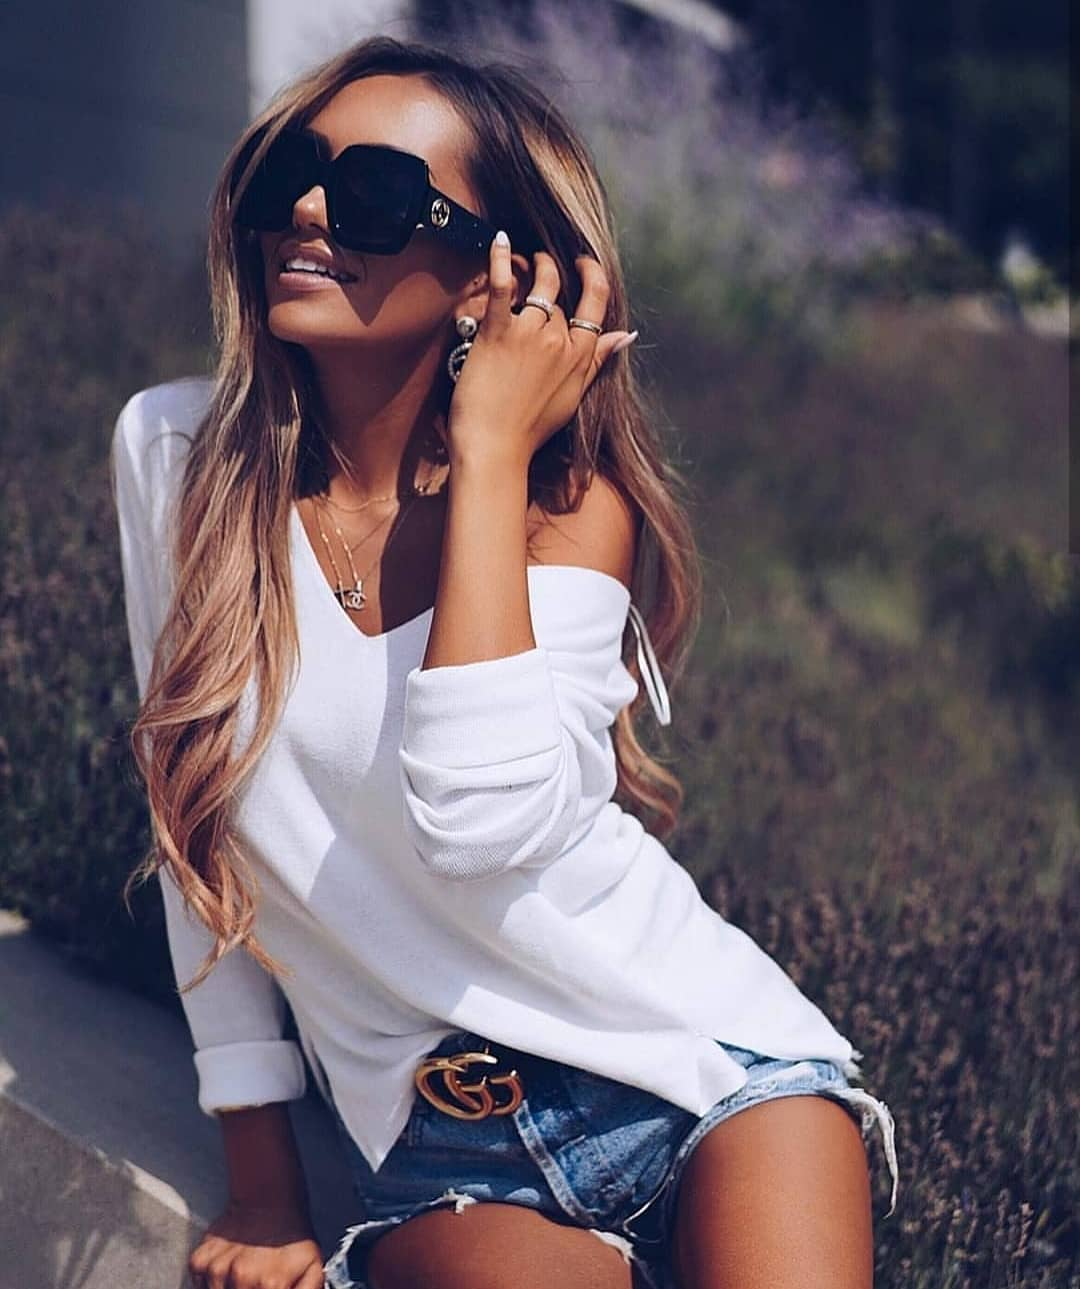 Off-Shoulder Slouchy Top In White And Wash Blue Denim Shorts For Summer 2020